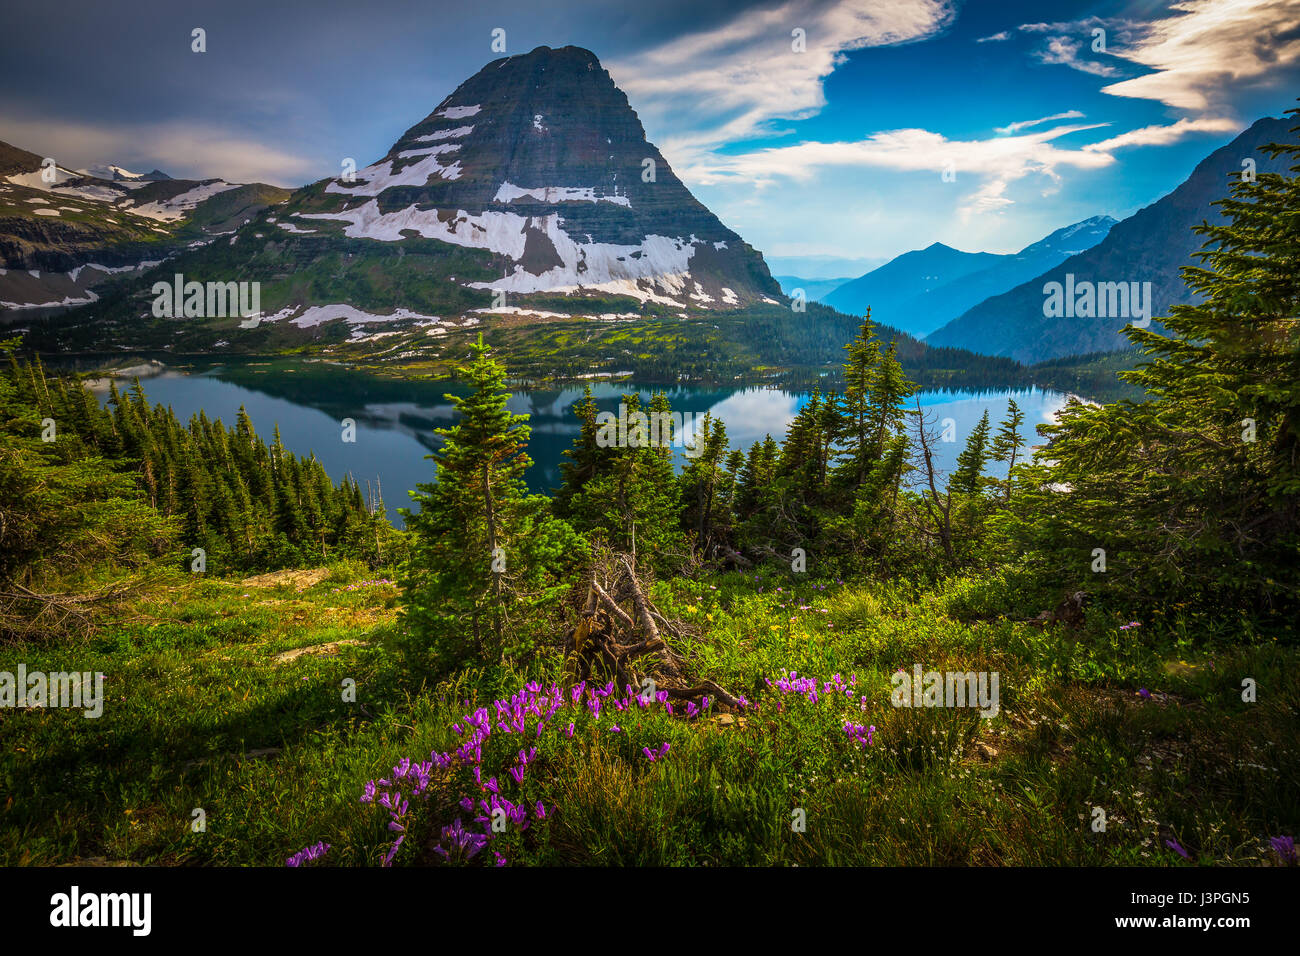 Hidden Lake is located in Glacier National Park, in the U. S. state of Montana. Hidden Lake is surrounded by numerous - Stock Image